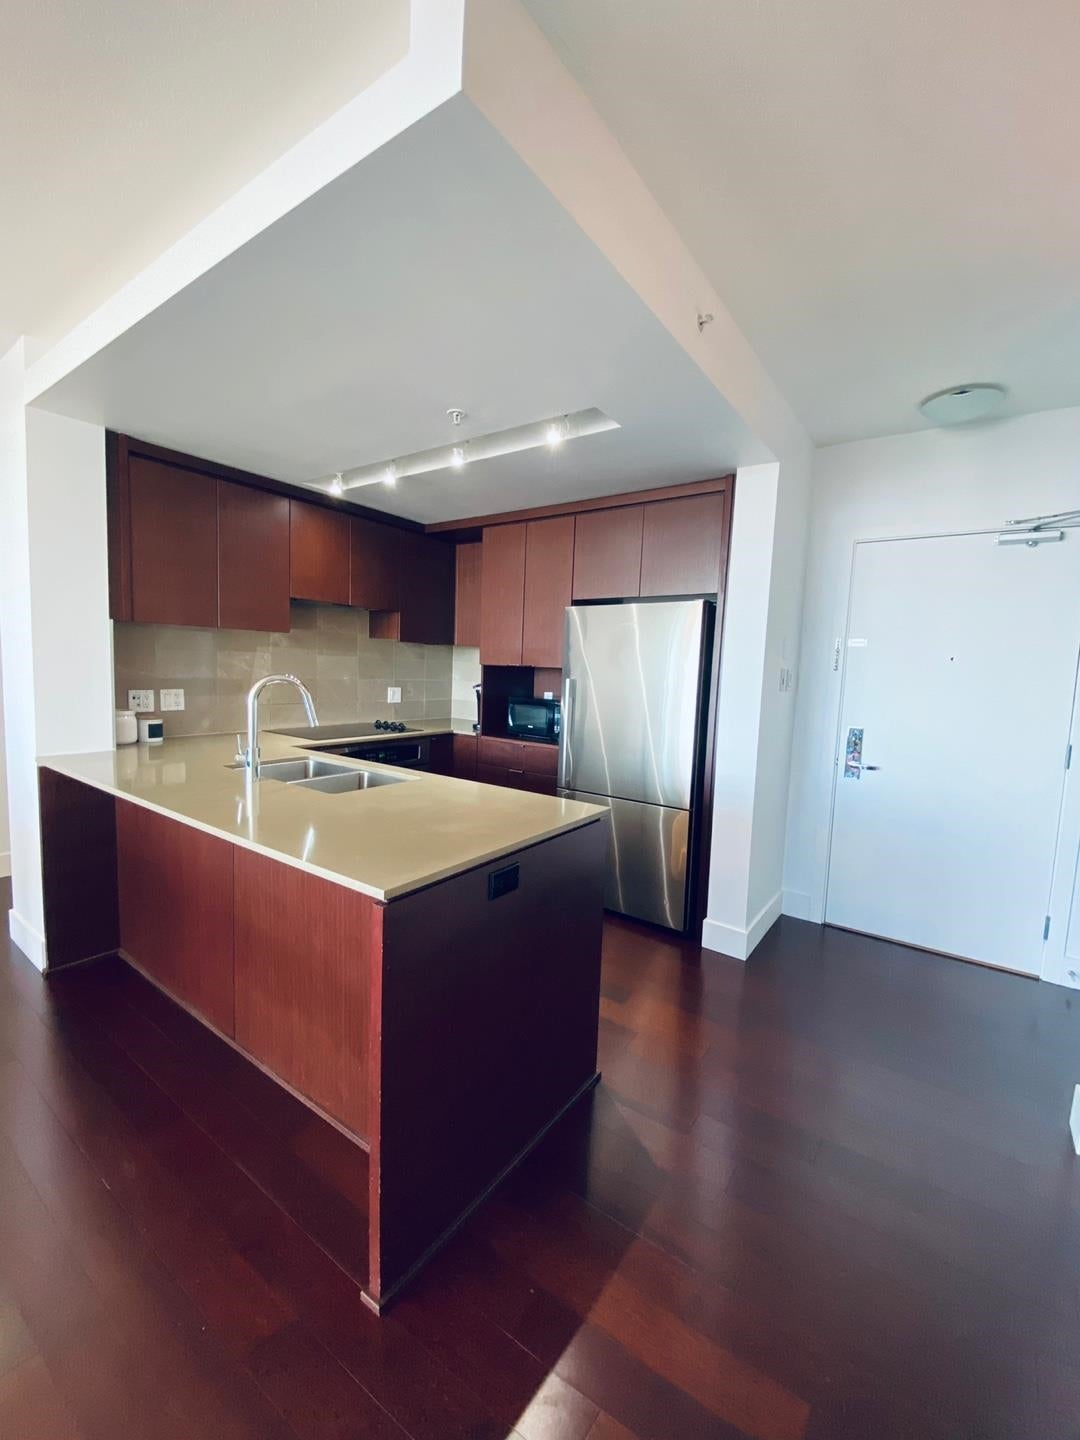 1505 158 W 13TH STREET - Central Lonsdale Apartment/Condo for sale, 2 Bedrooms (R2616868) - #12